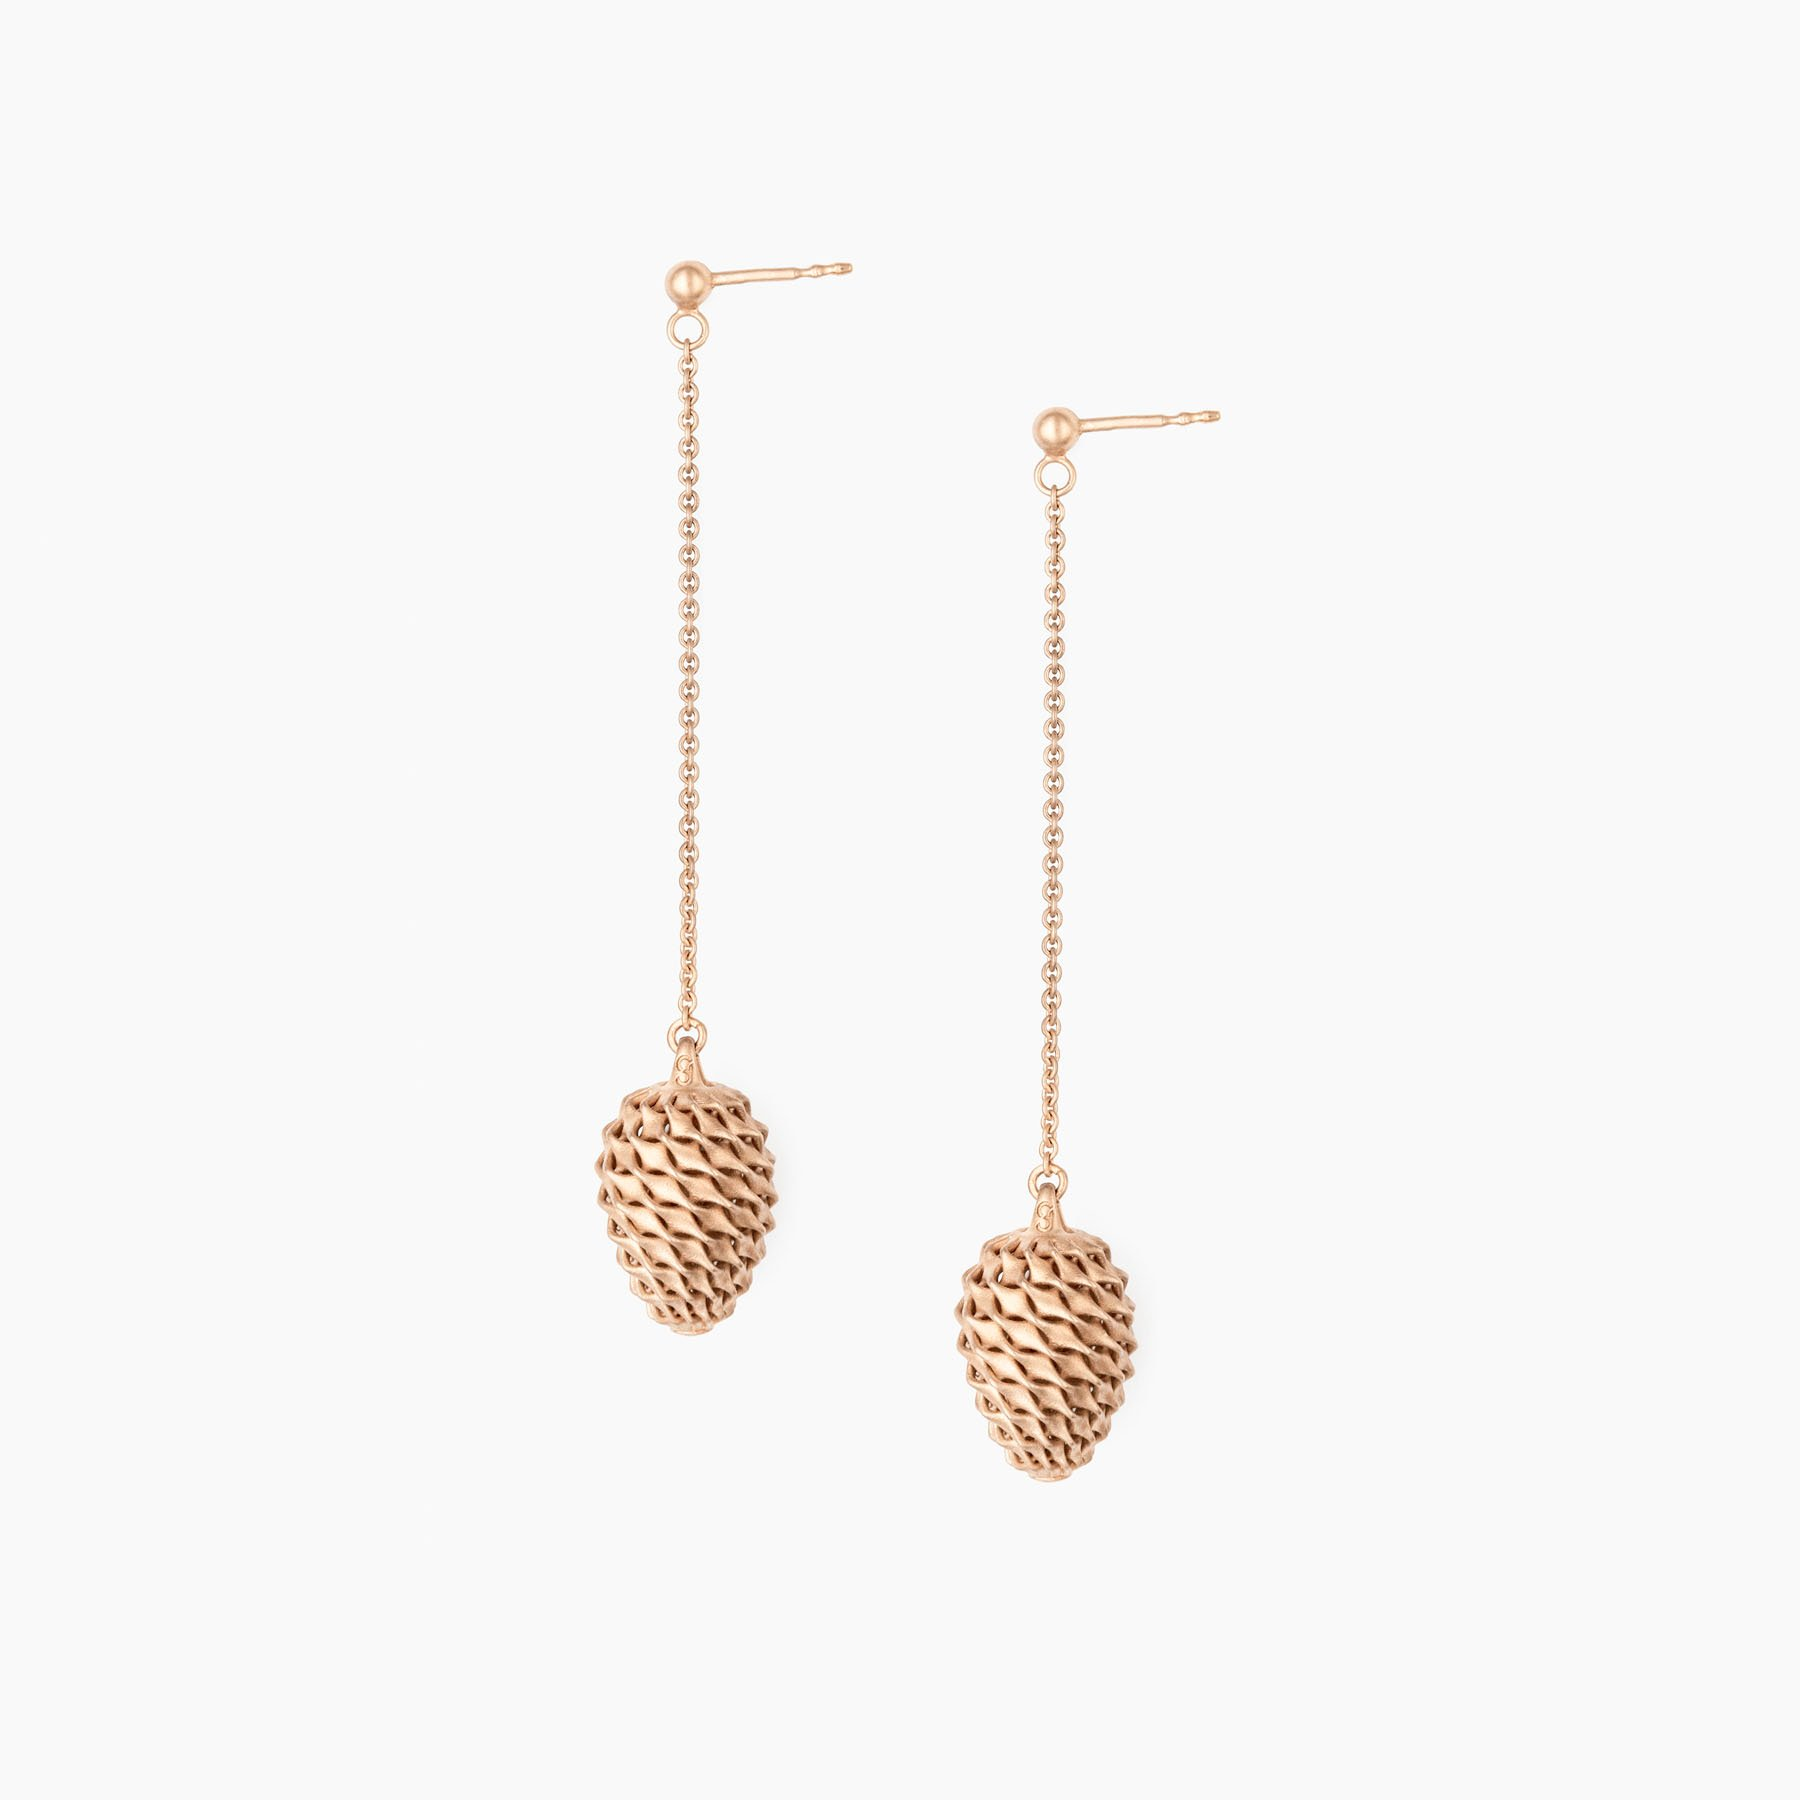 Neta Earrings |  | Article code: Neta Earrings